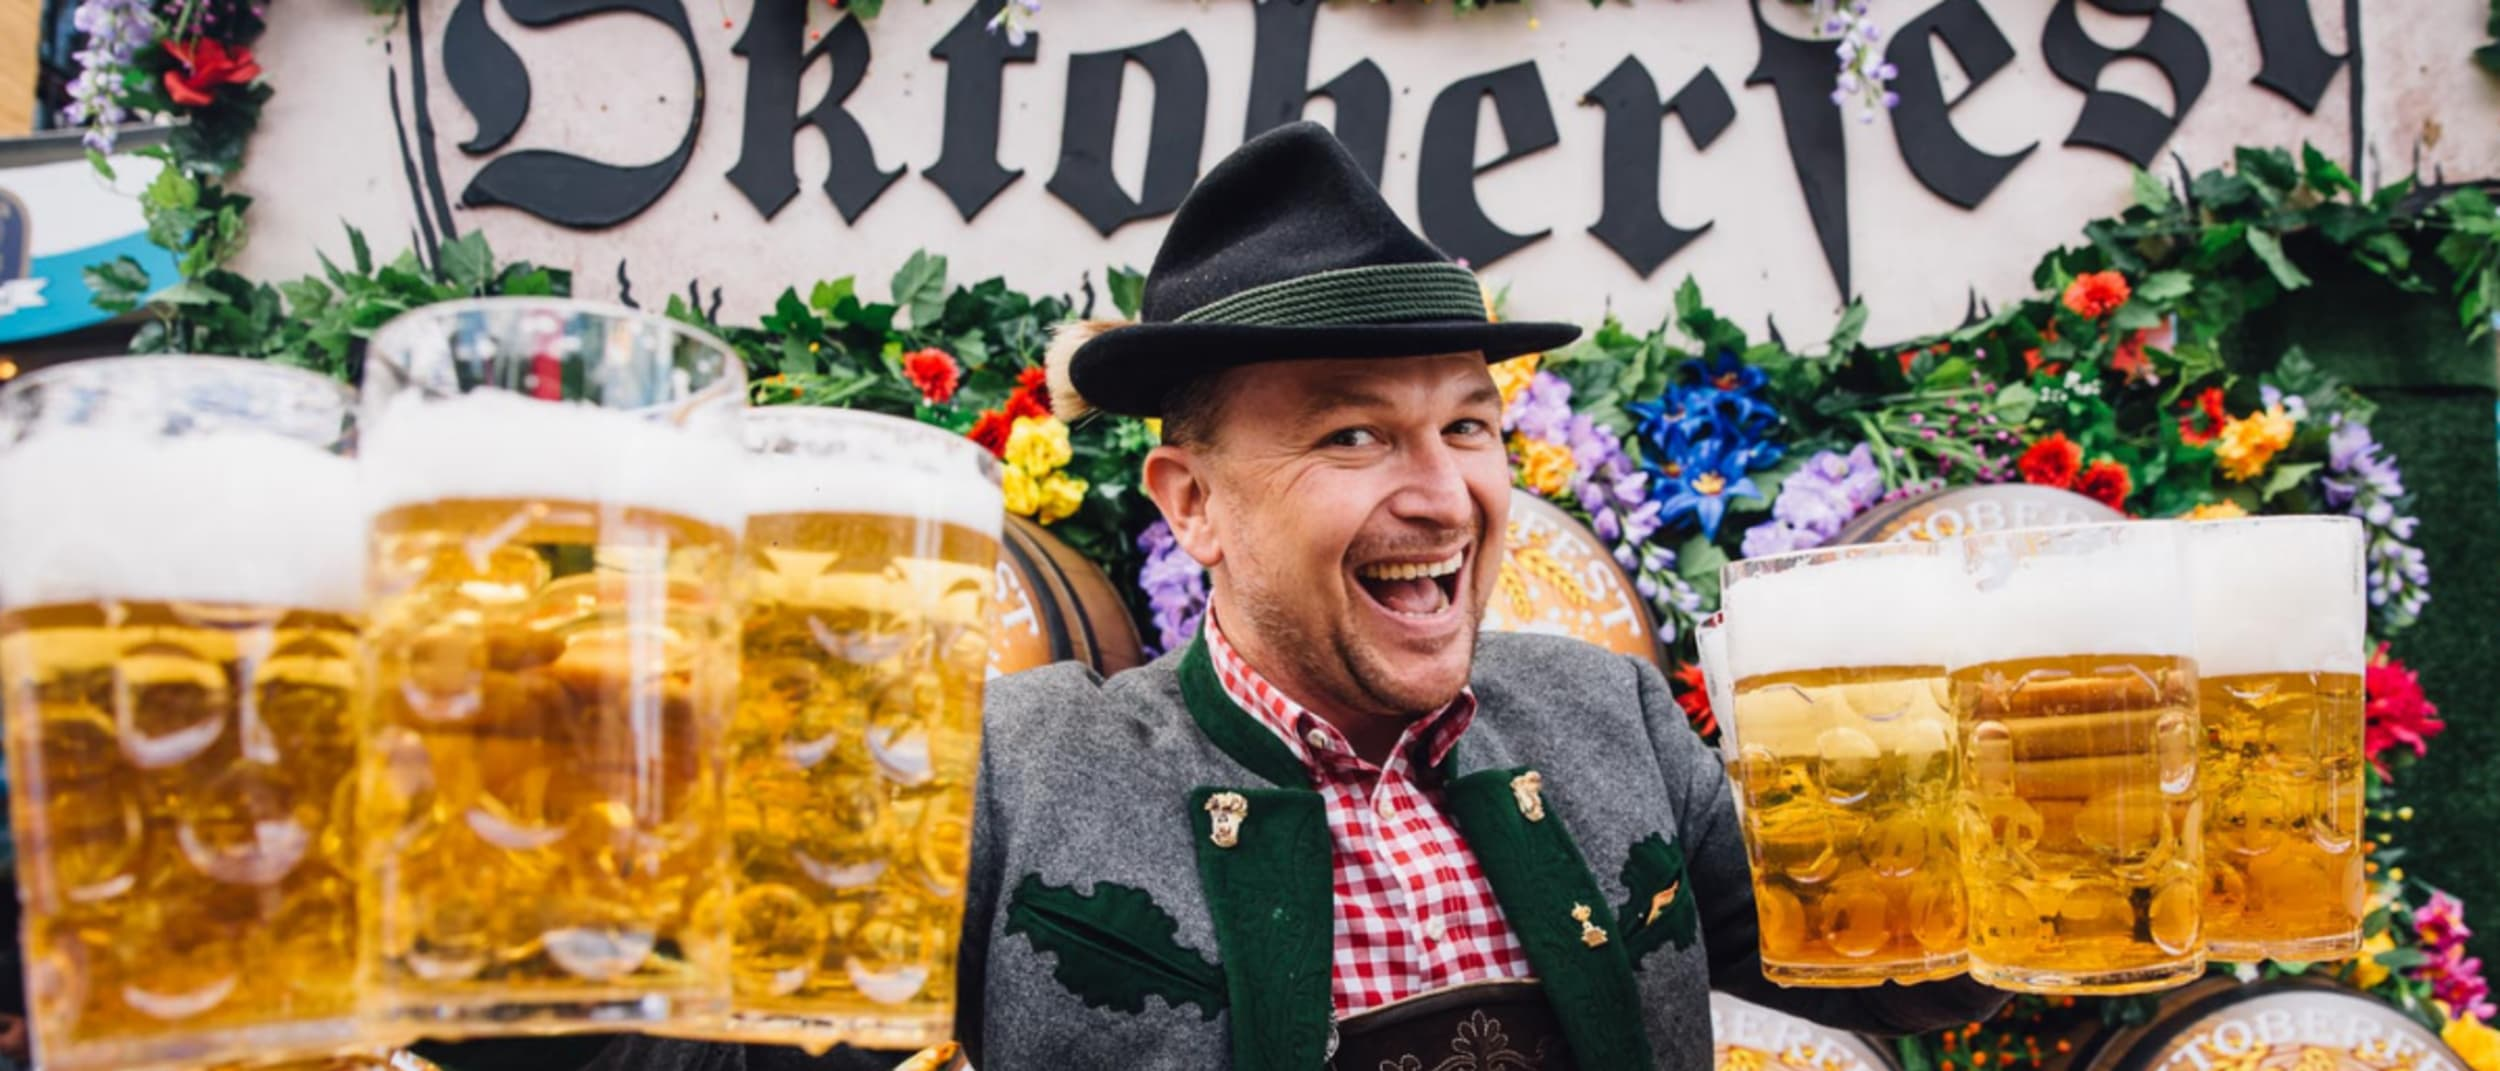 Limited edition Oktoberfest beers at The Bavarian